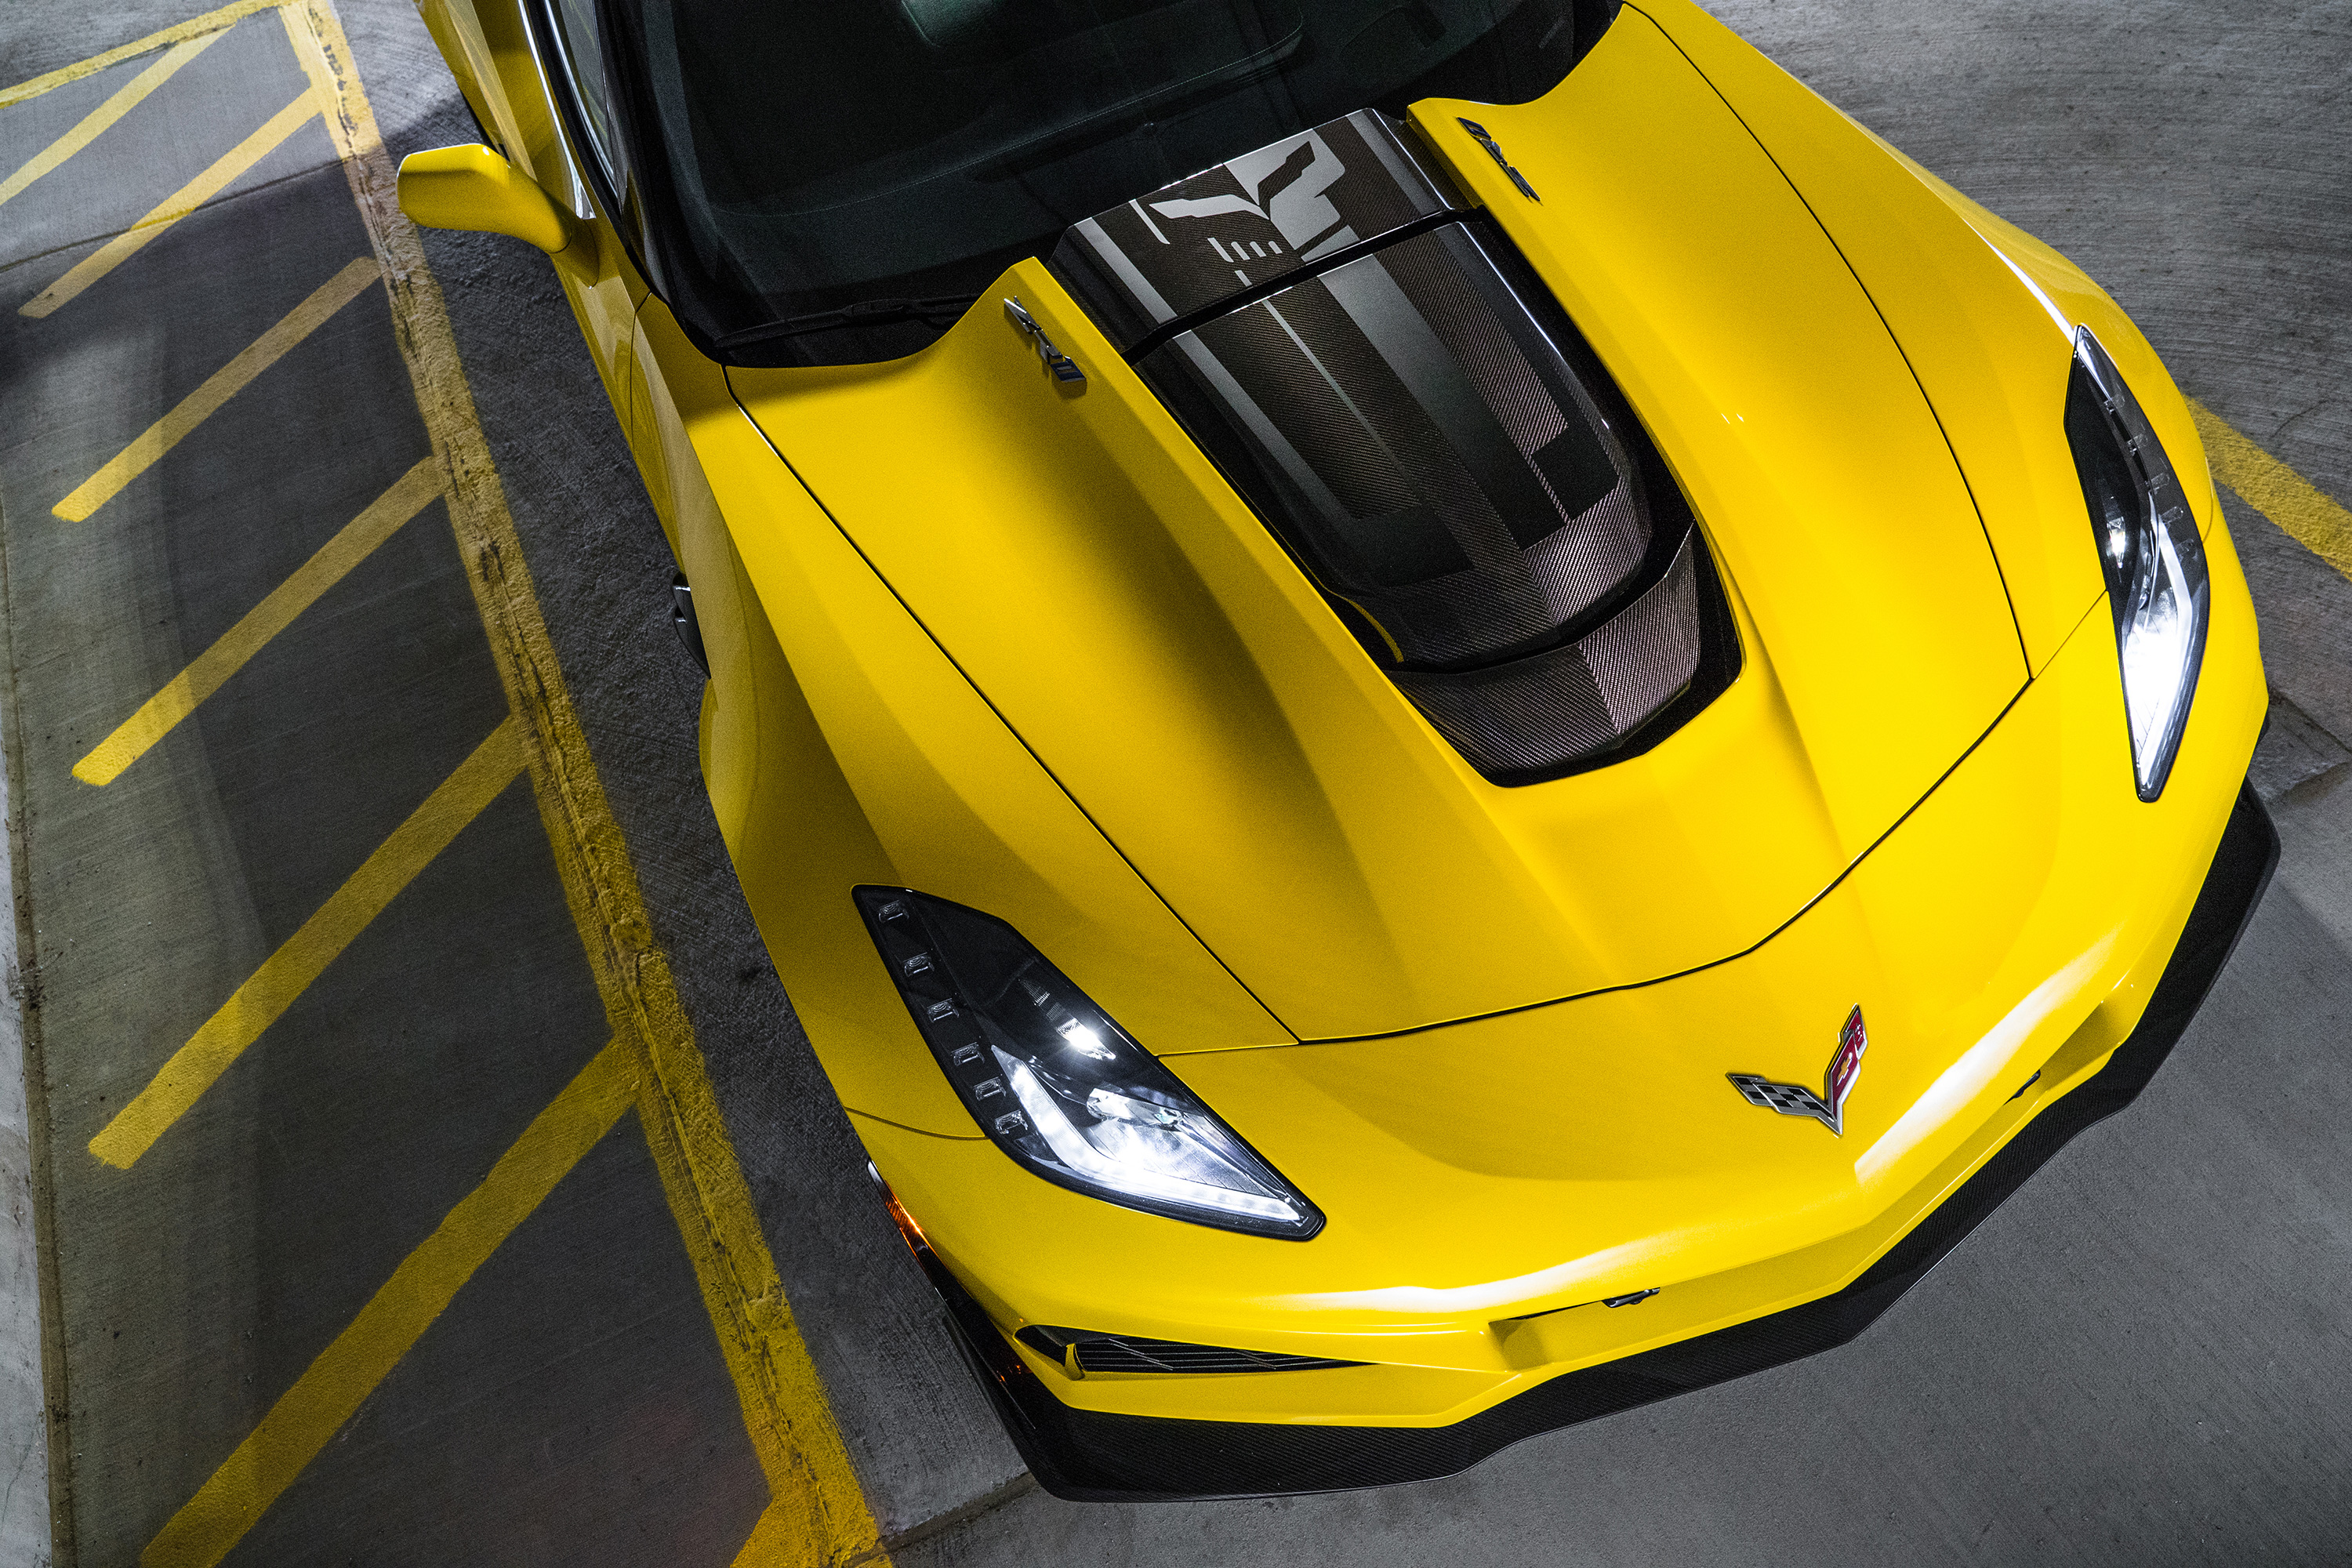 2019 chevy corvette zr1 yellow hood headlights